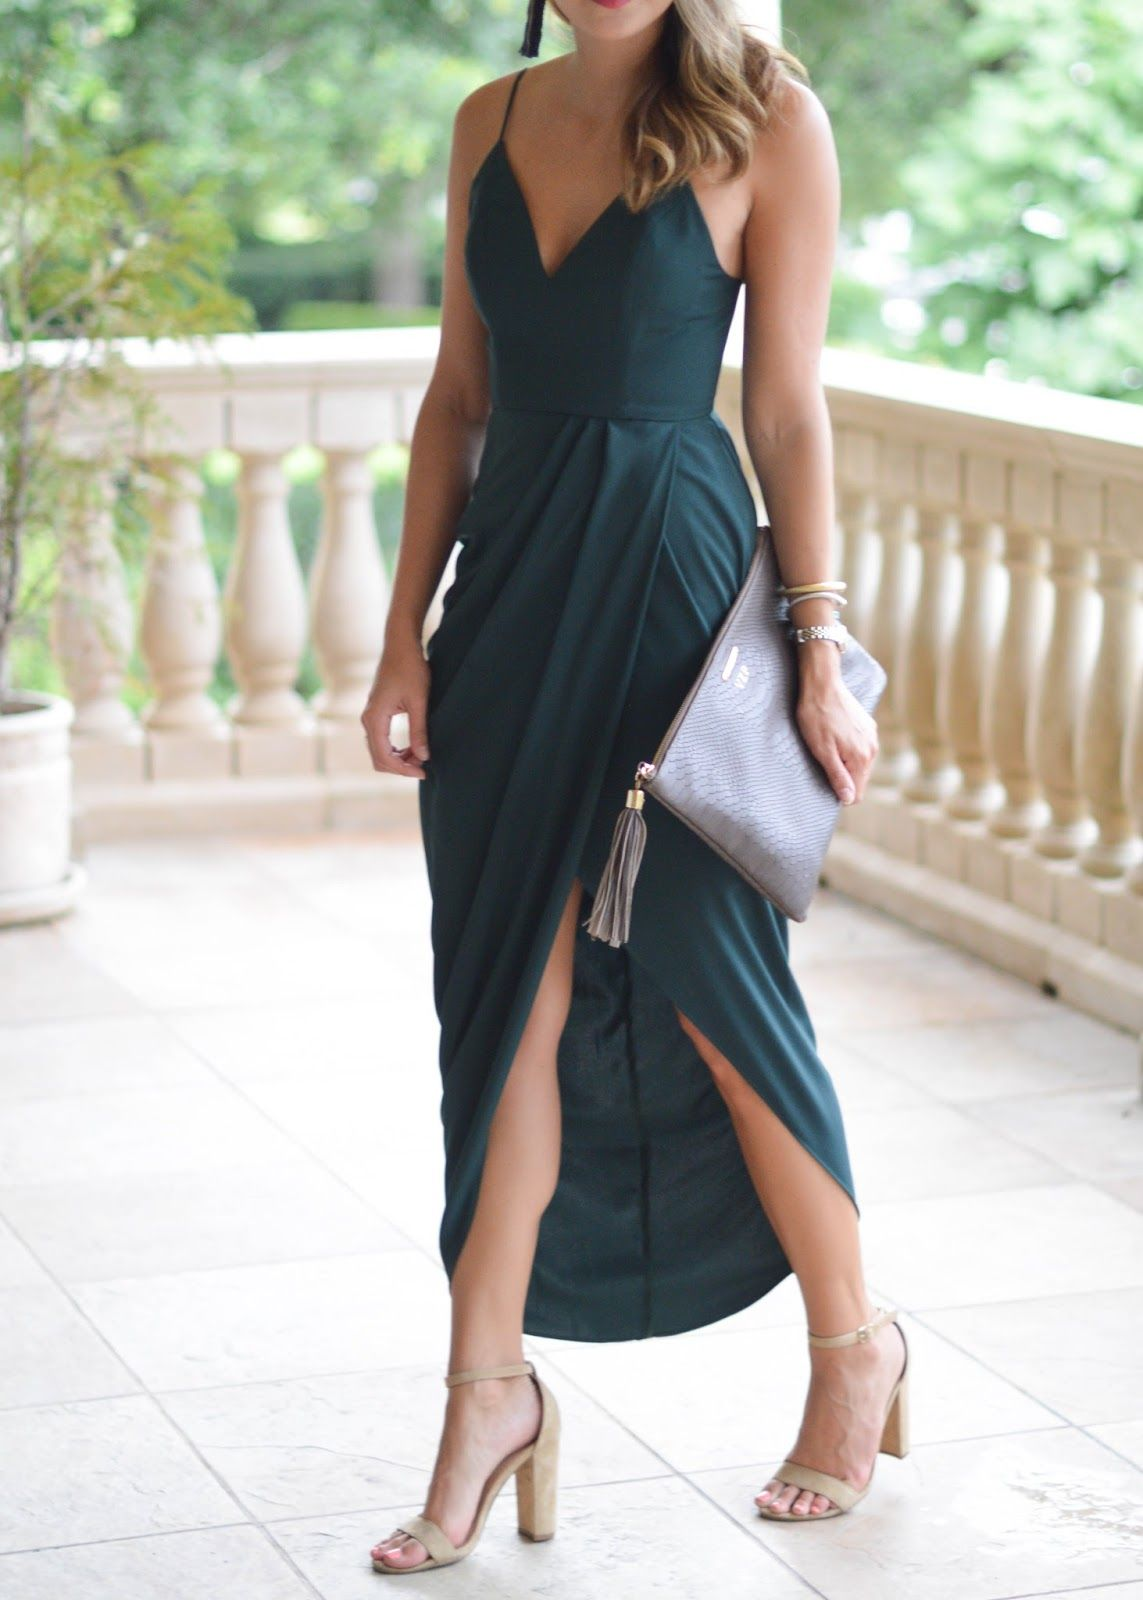 That one dress pinterest wedding guest style dress for Cocktail dresses to wear to a wedding